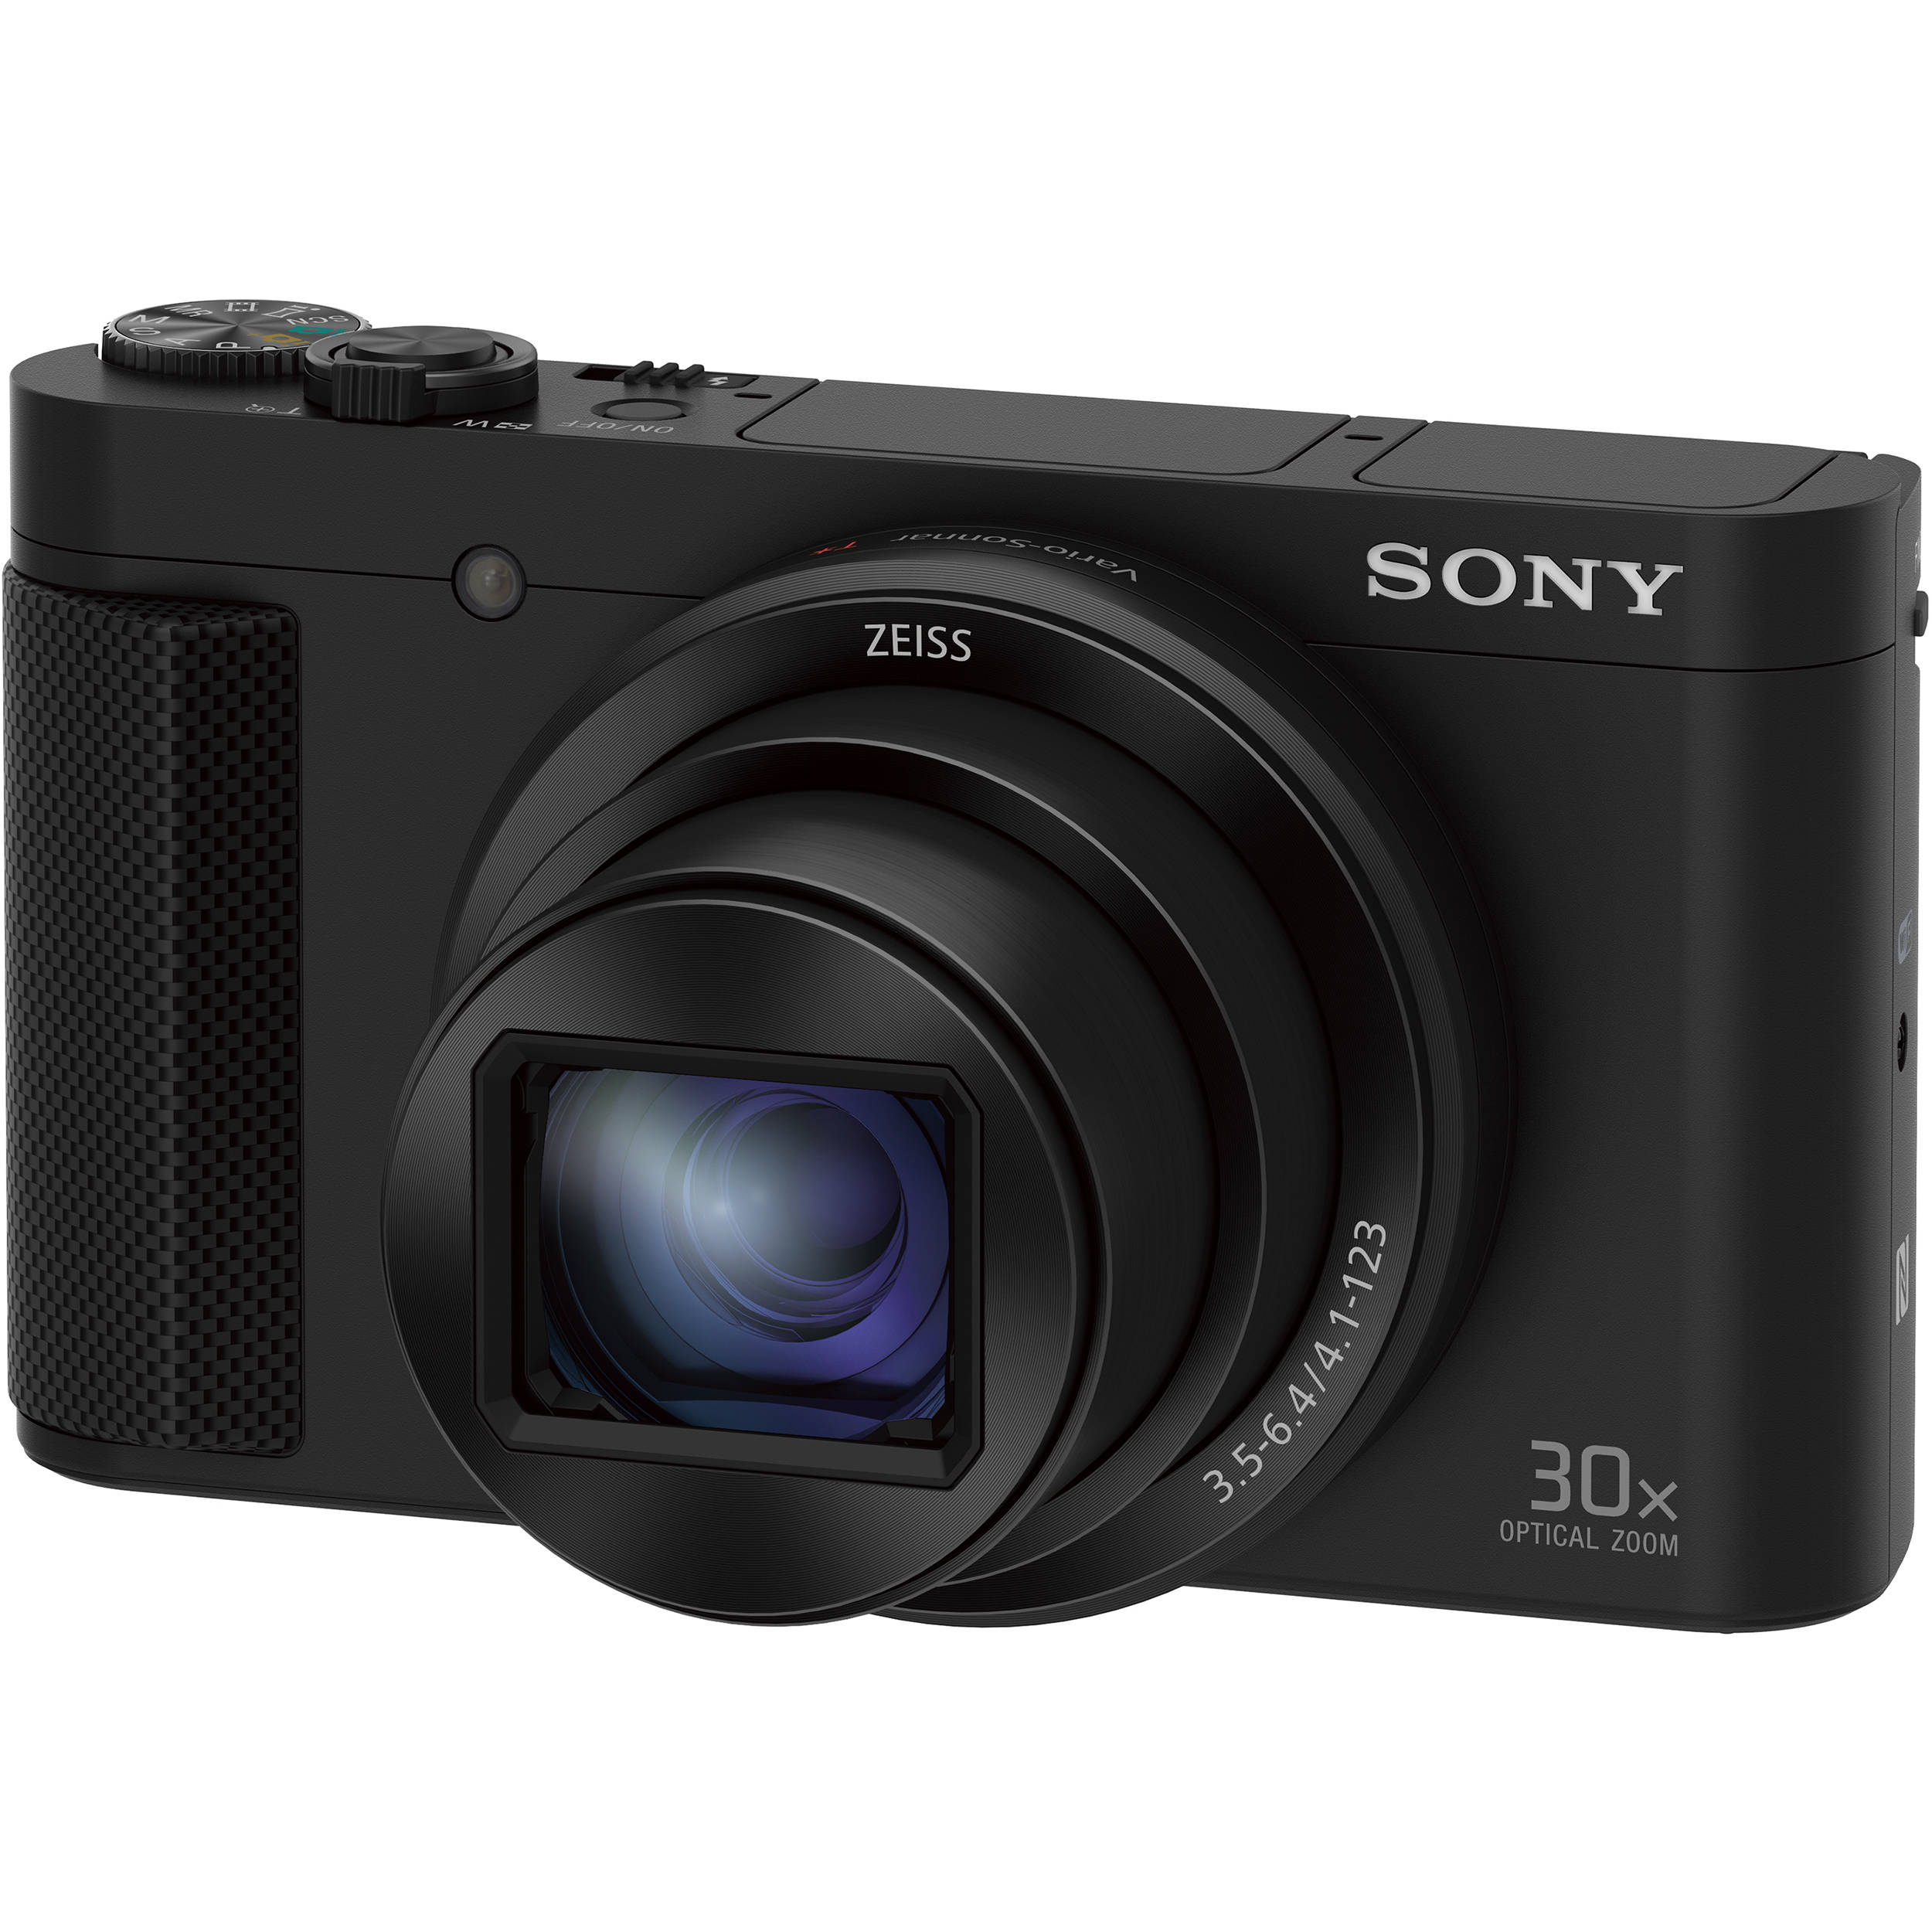 Sony Cyber-shot DSC-HX80 Digital Camera DSCHX80/B B&H Photo